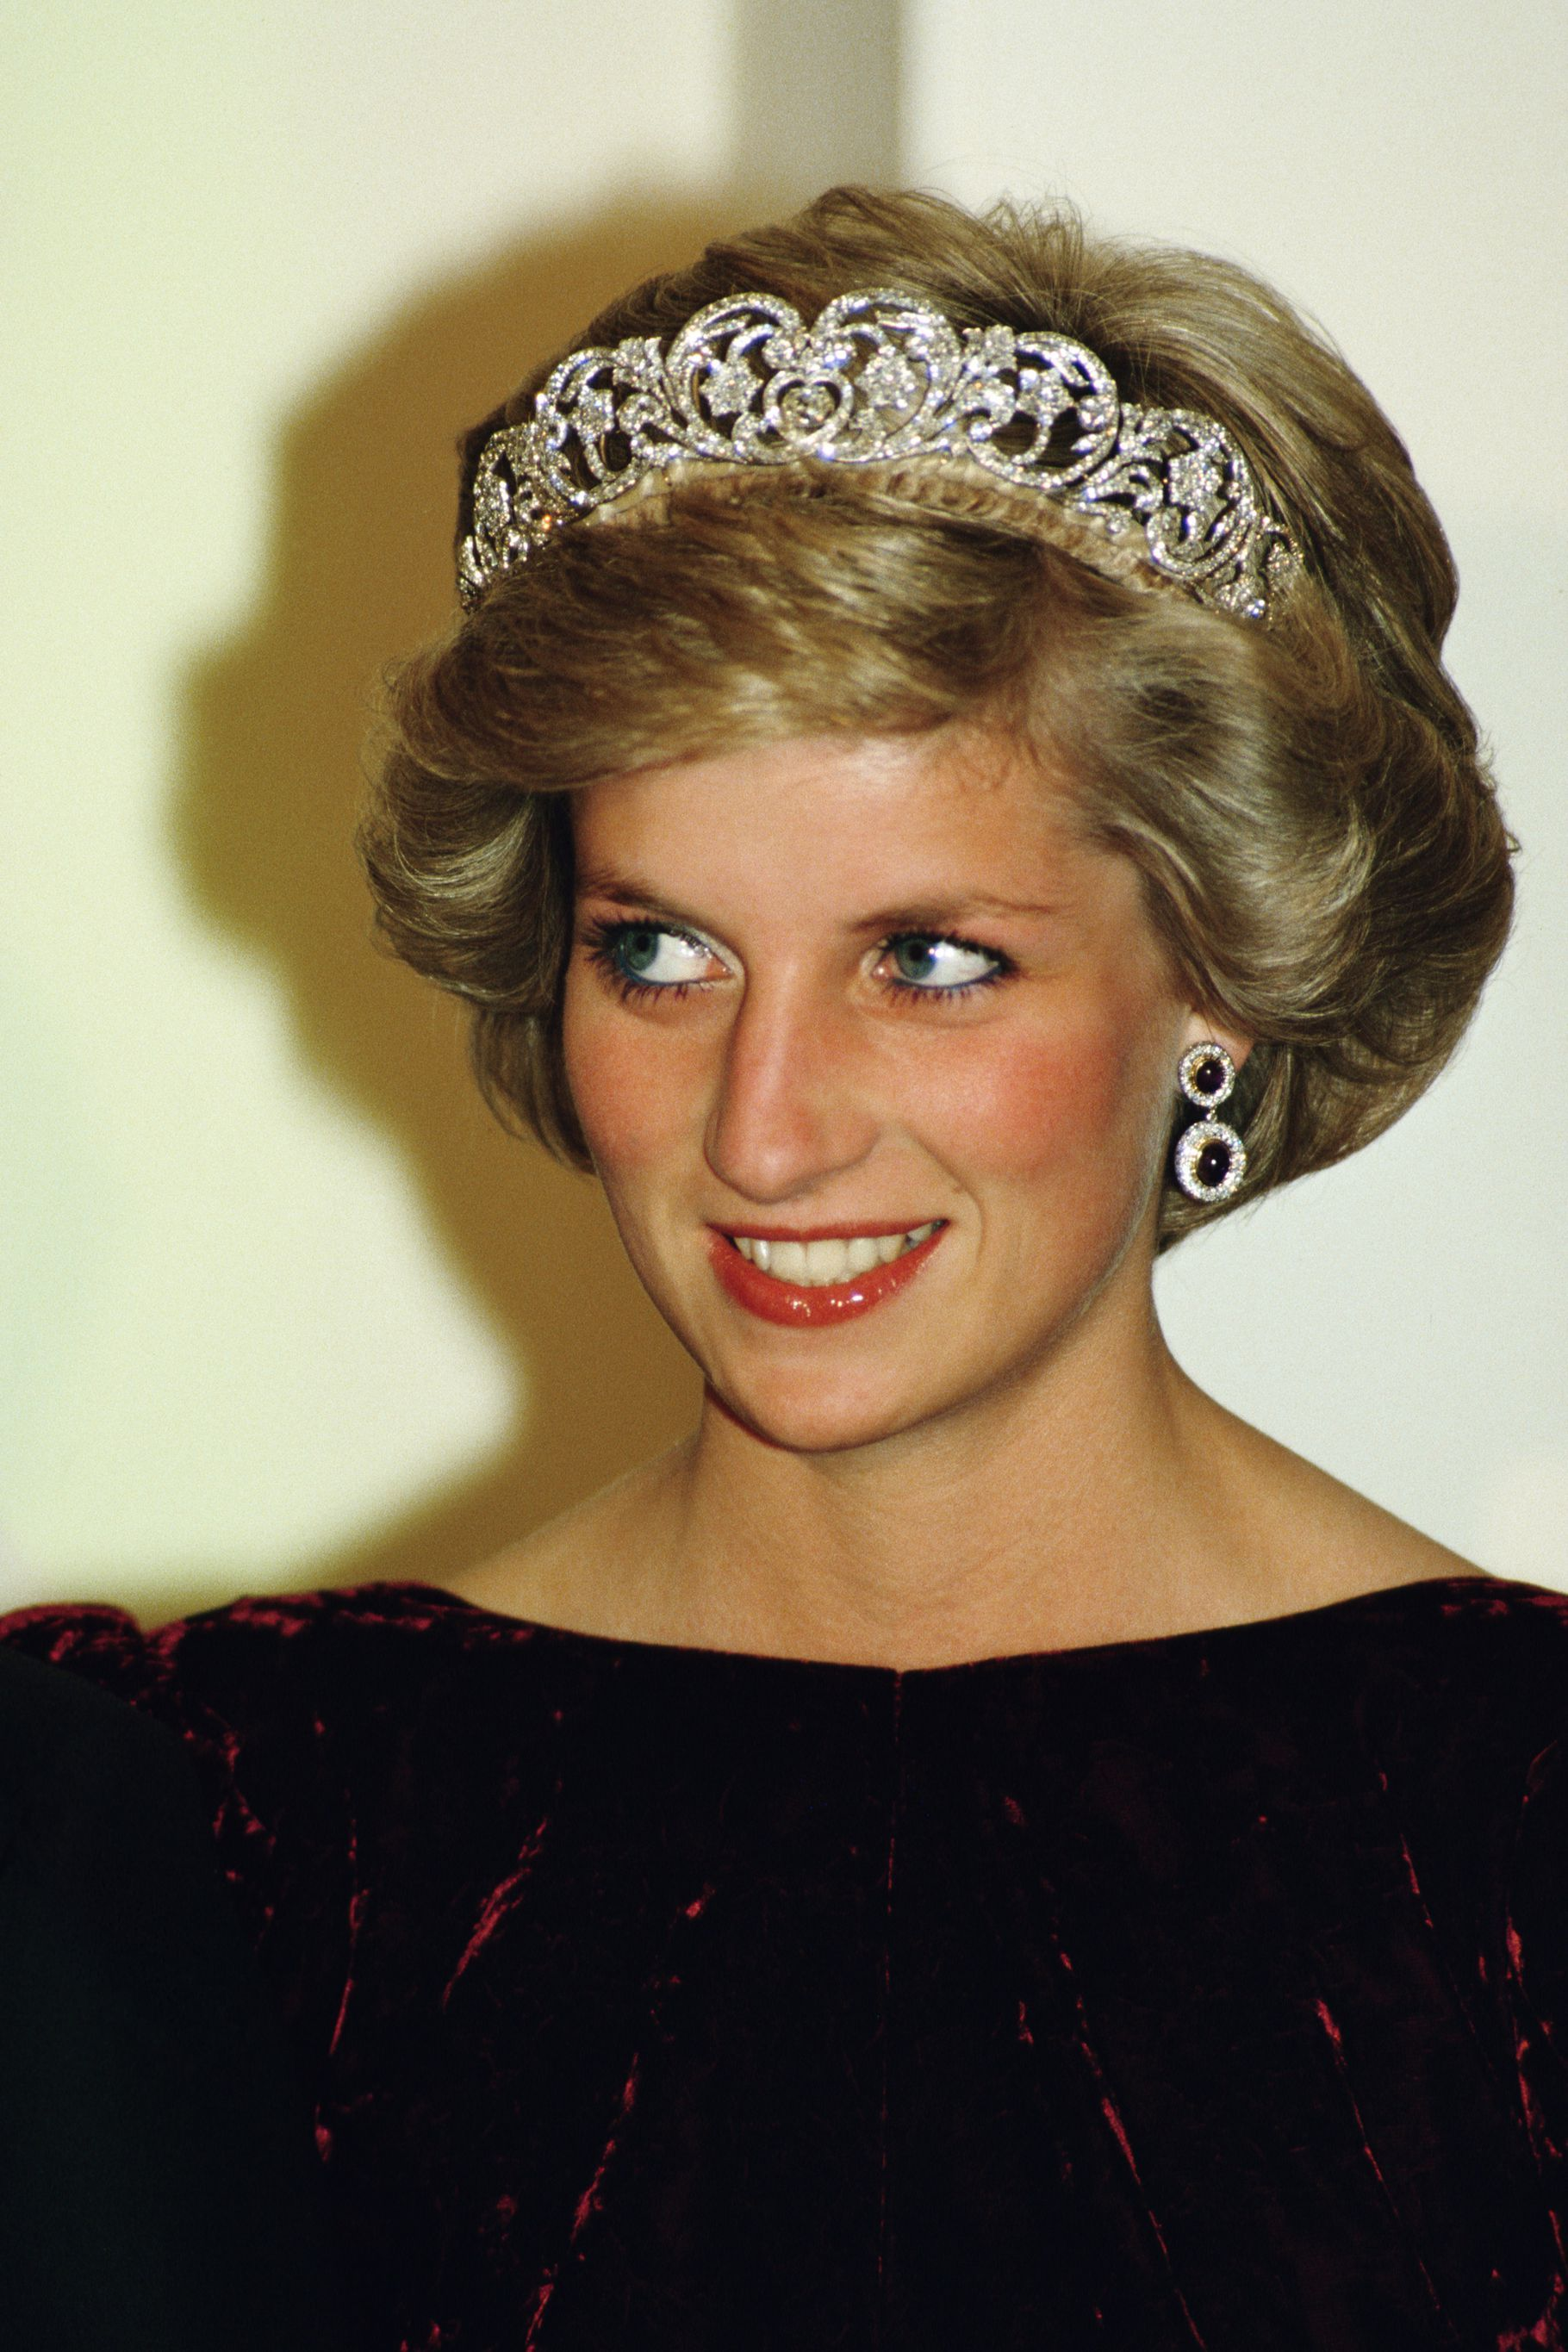 25 Beauty Secrets to Steal From Princess Diana